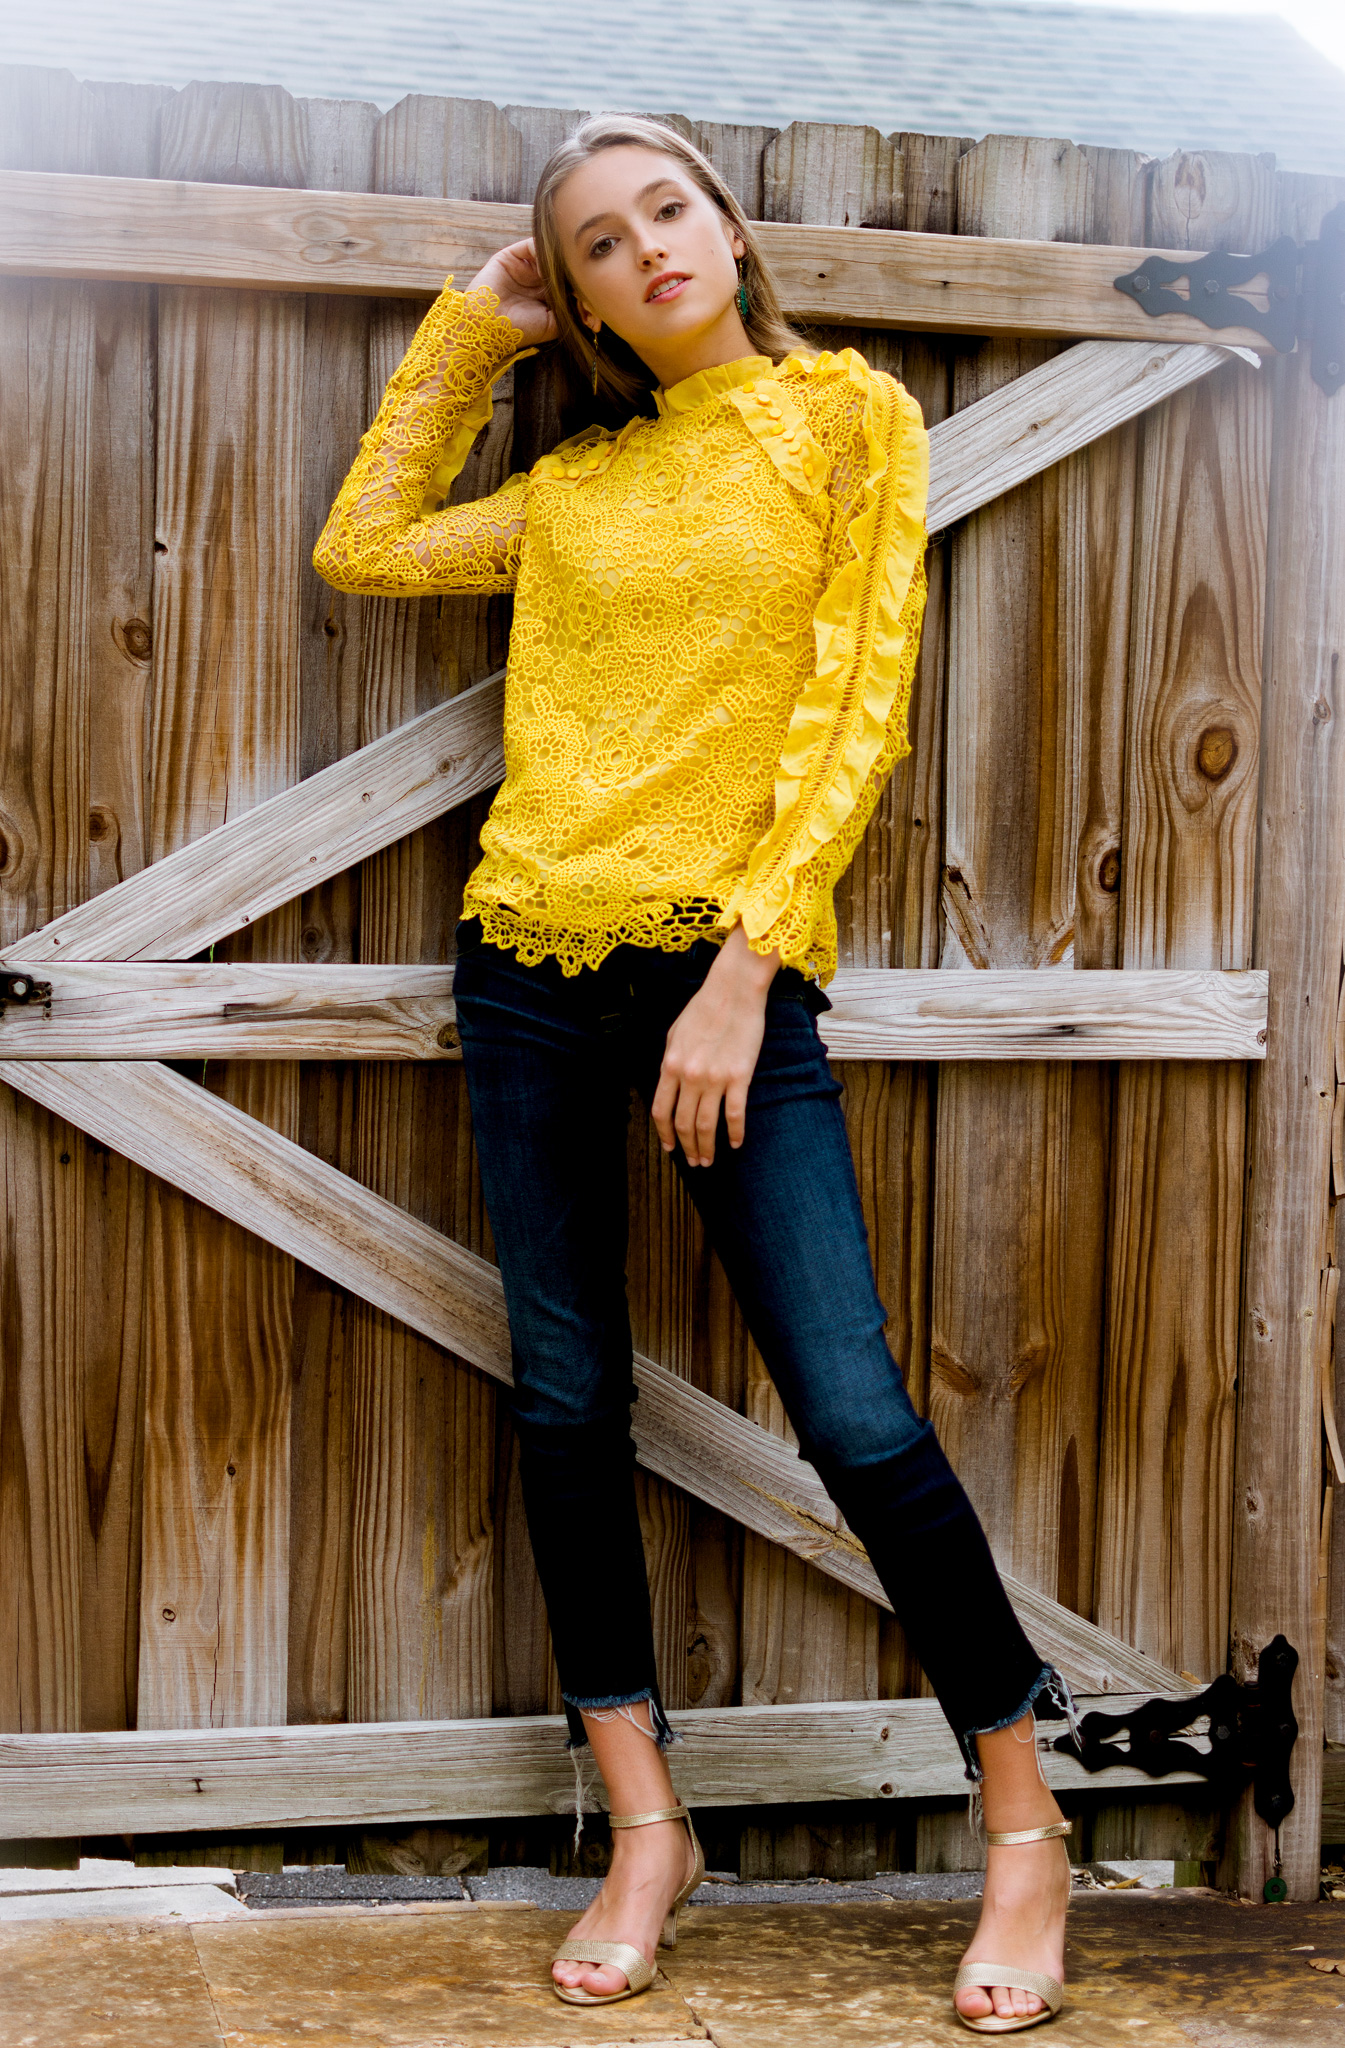 Fall fashion editorial, Paige Denim and Marshall's clothing photographed by Carlie Chew in Tampa, Florida